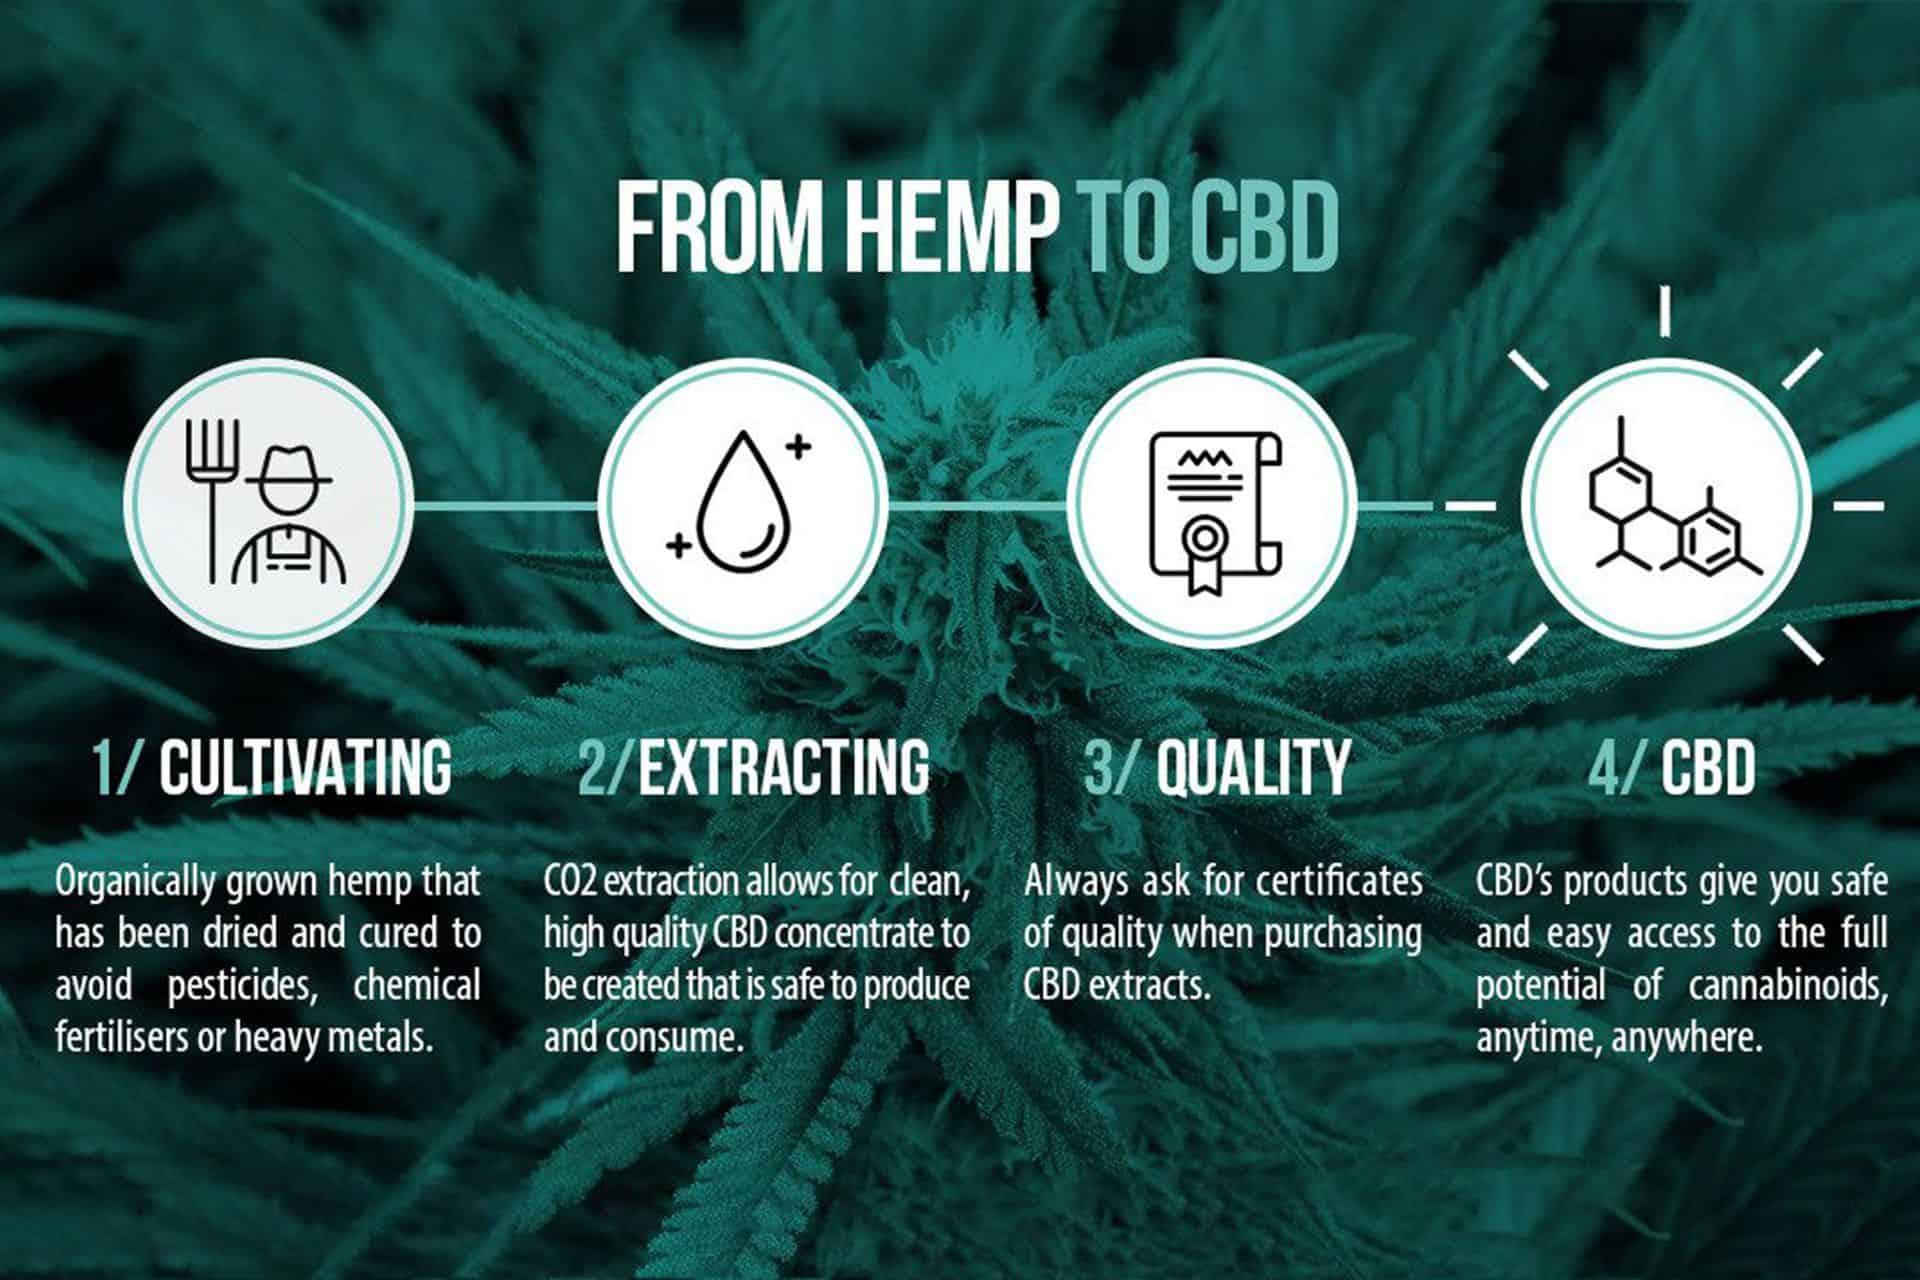 How is CBD extracted?